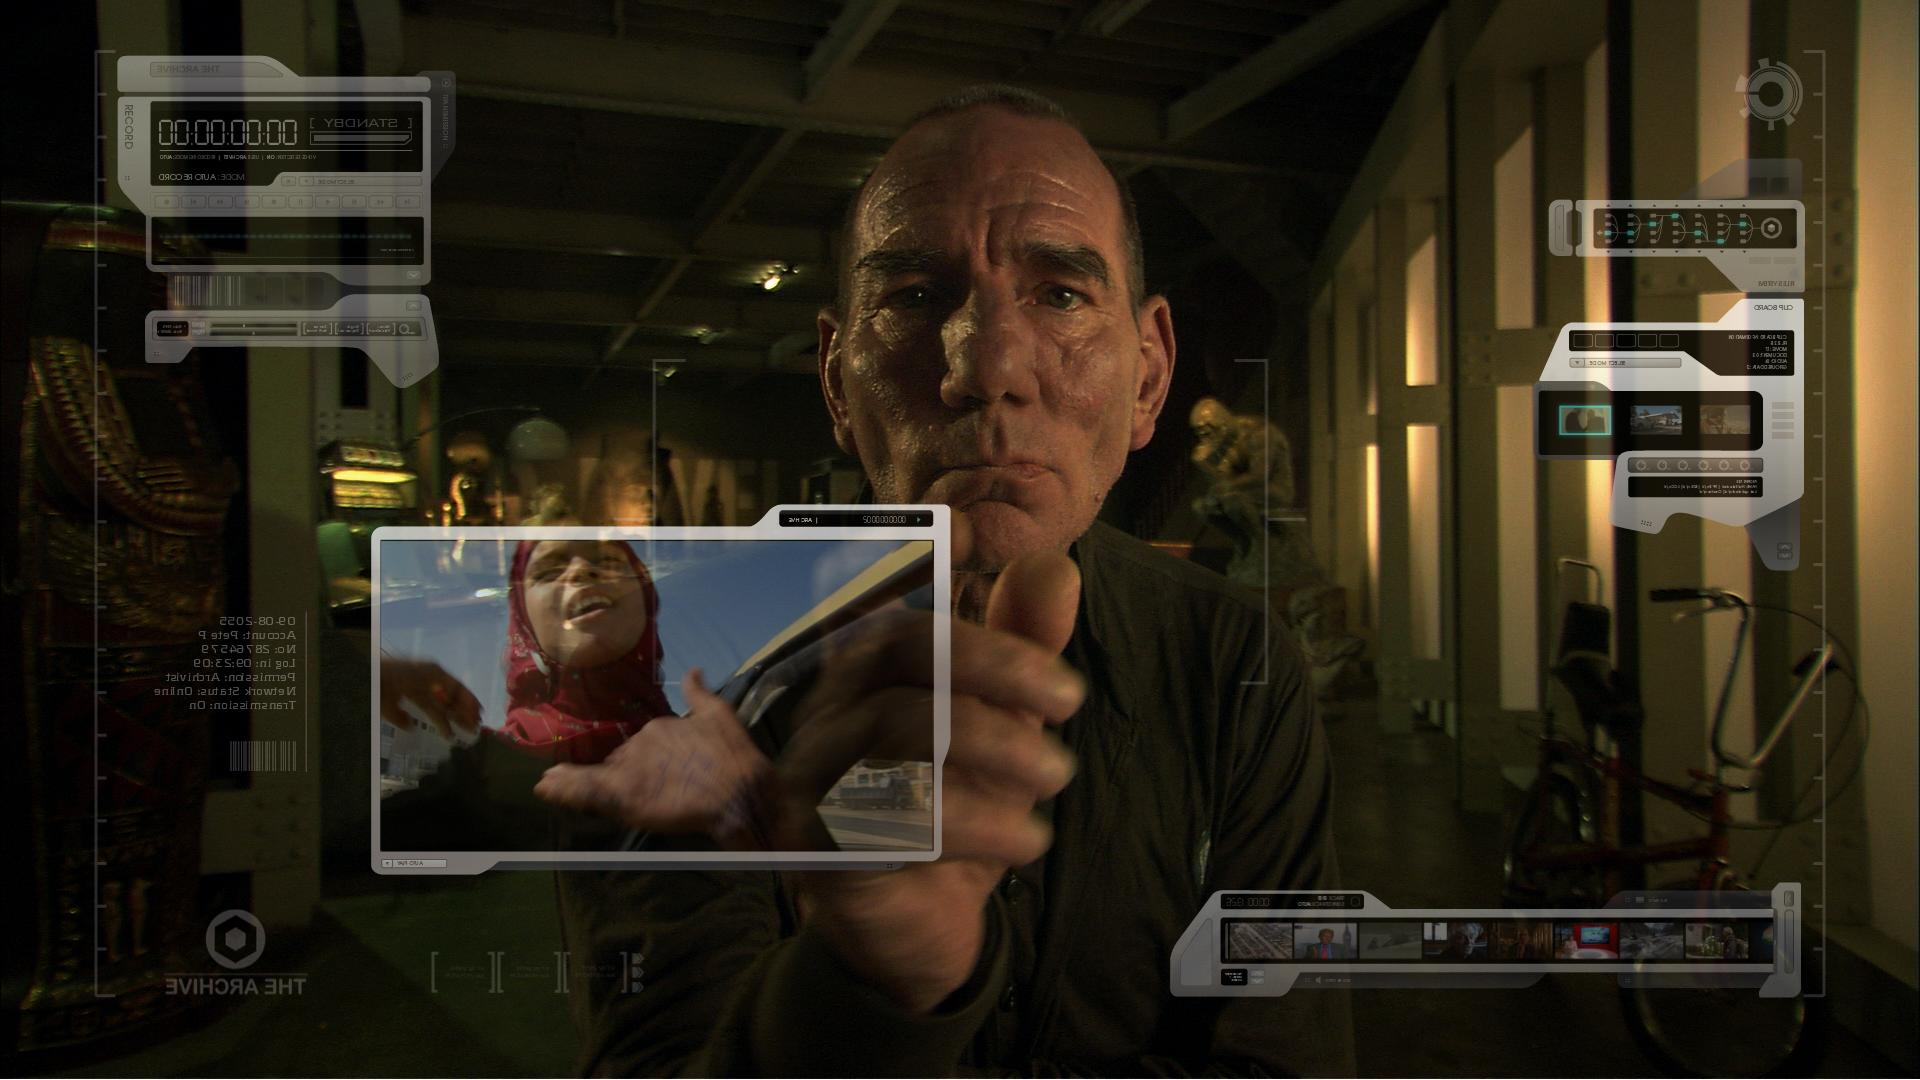 Pete Postlethwaite plays The Archivist in The Age of Stupid